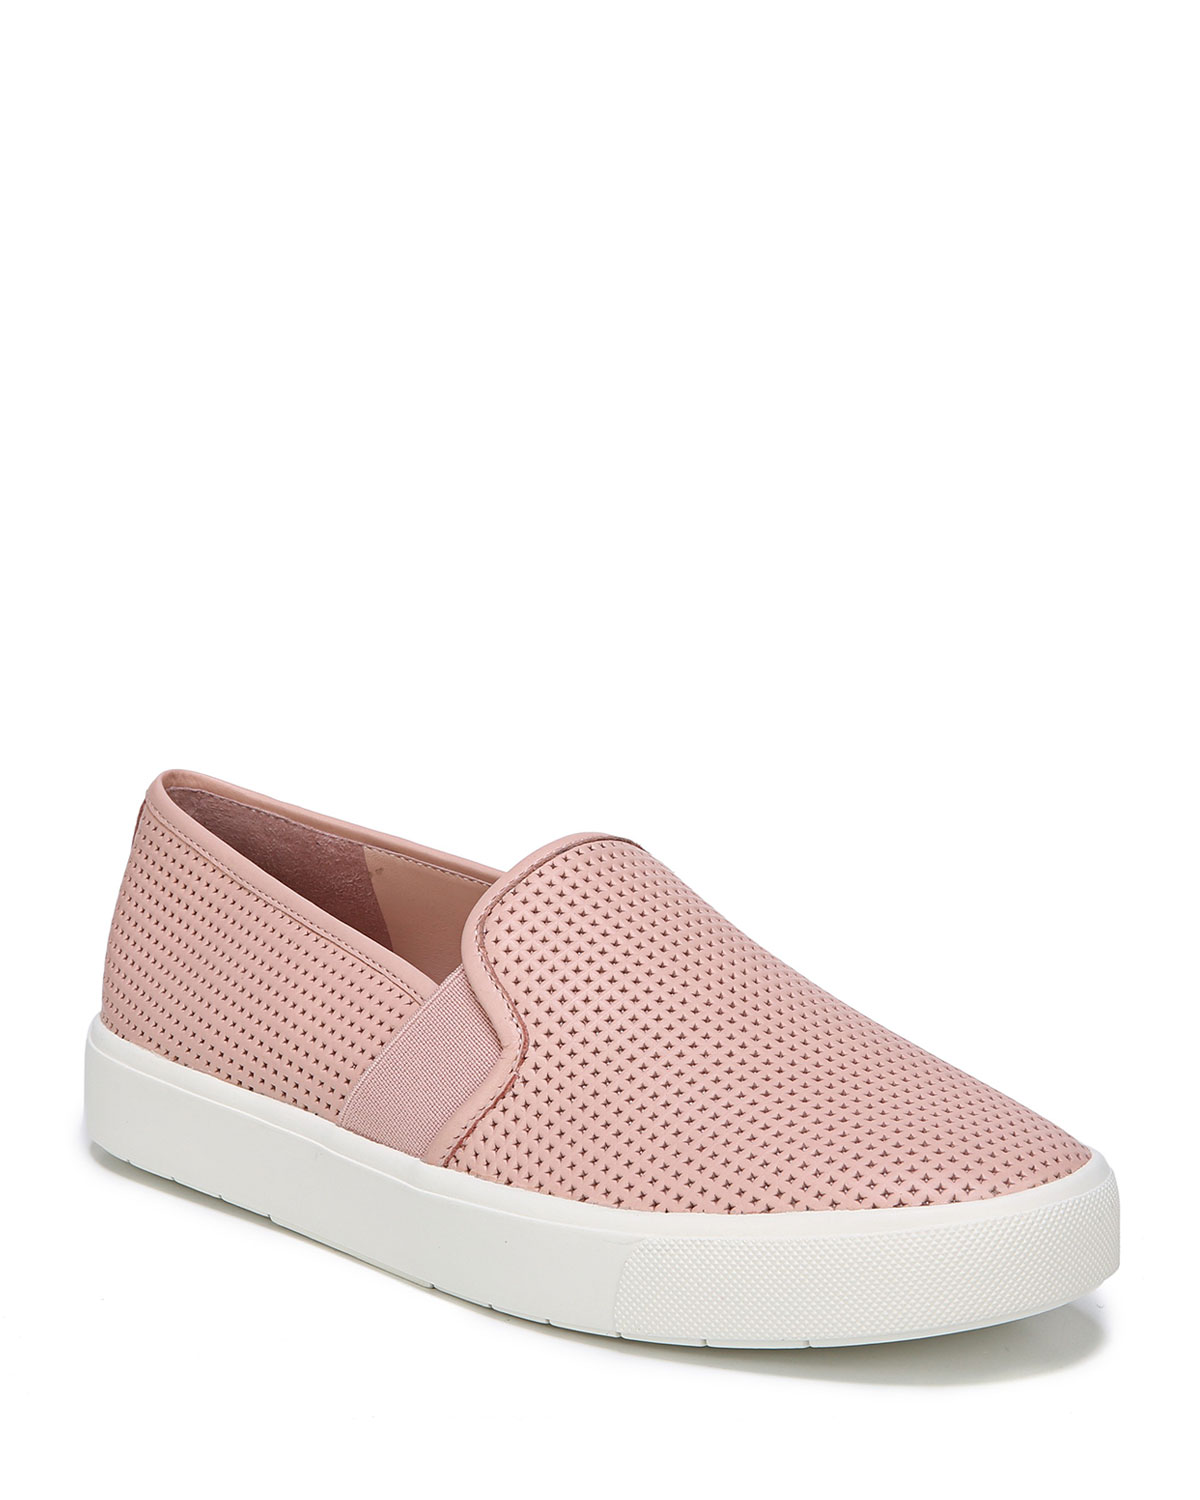 fac8e2553 Vince Blair 5 Perforated Slip-On Sneakers | Neiman Marcus